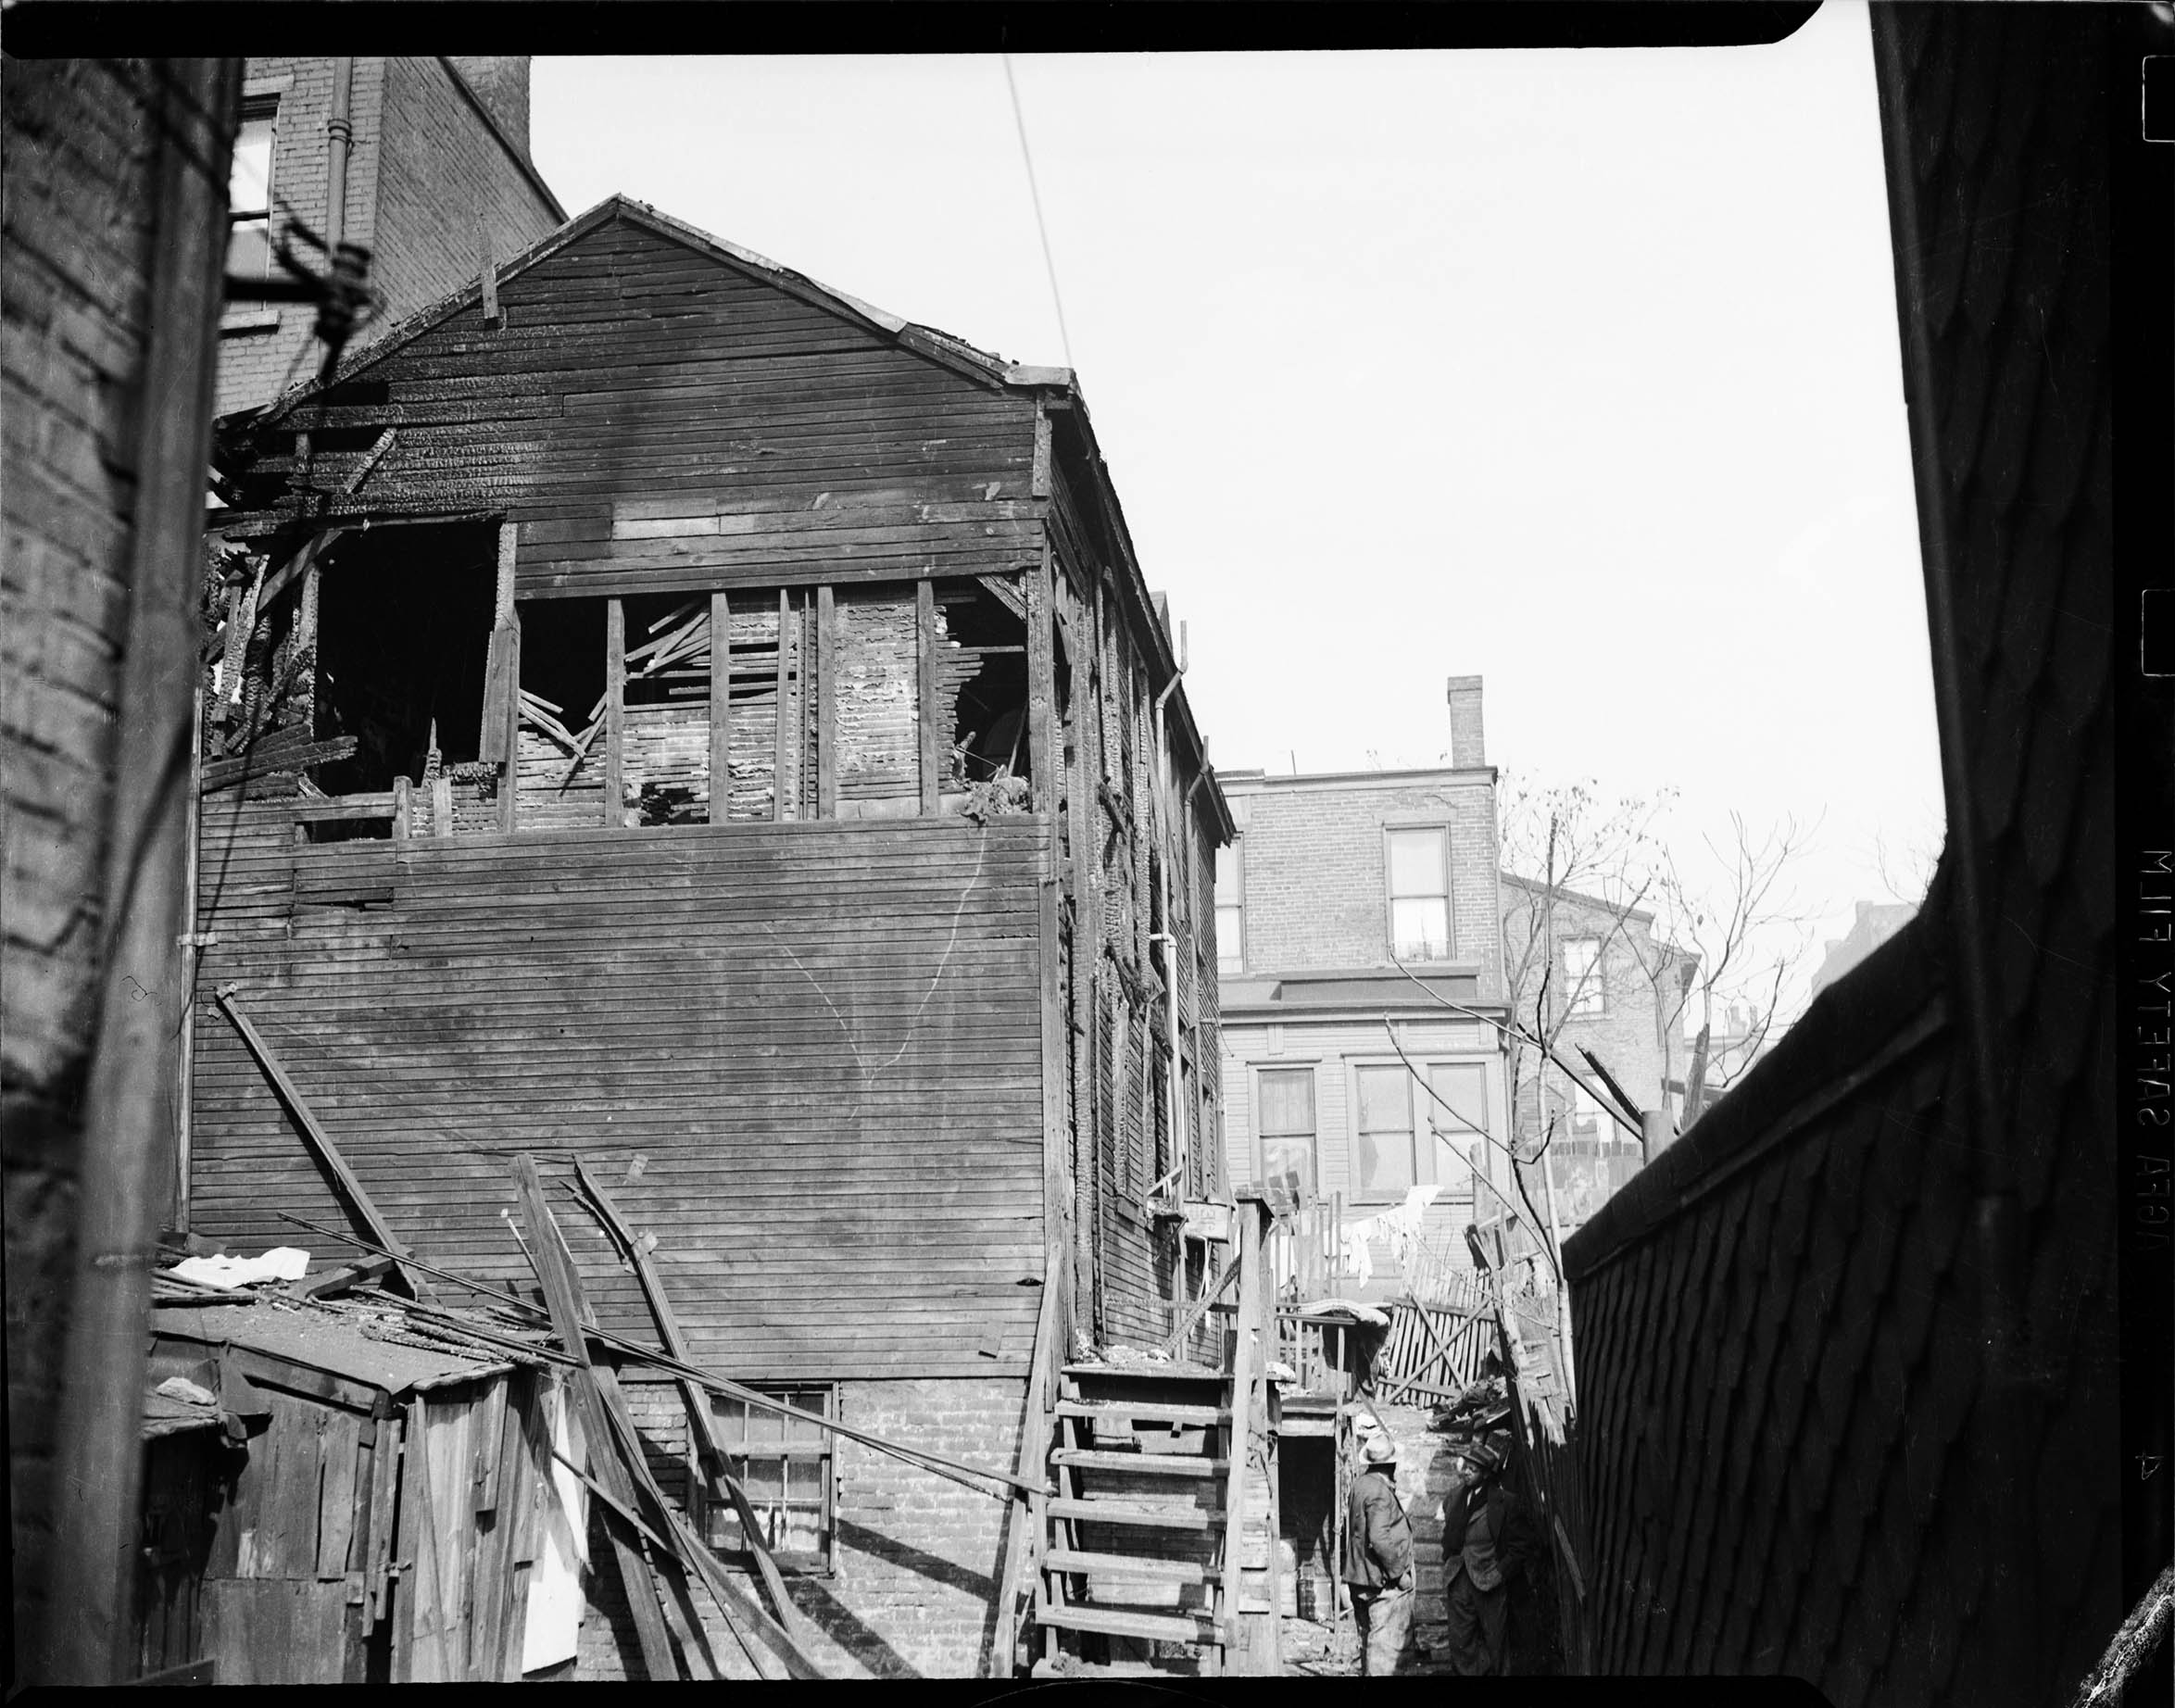 Exterior View Of Wooden House With Planks Of Wood Falling Off And